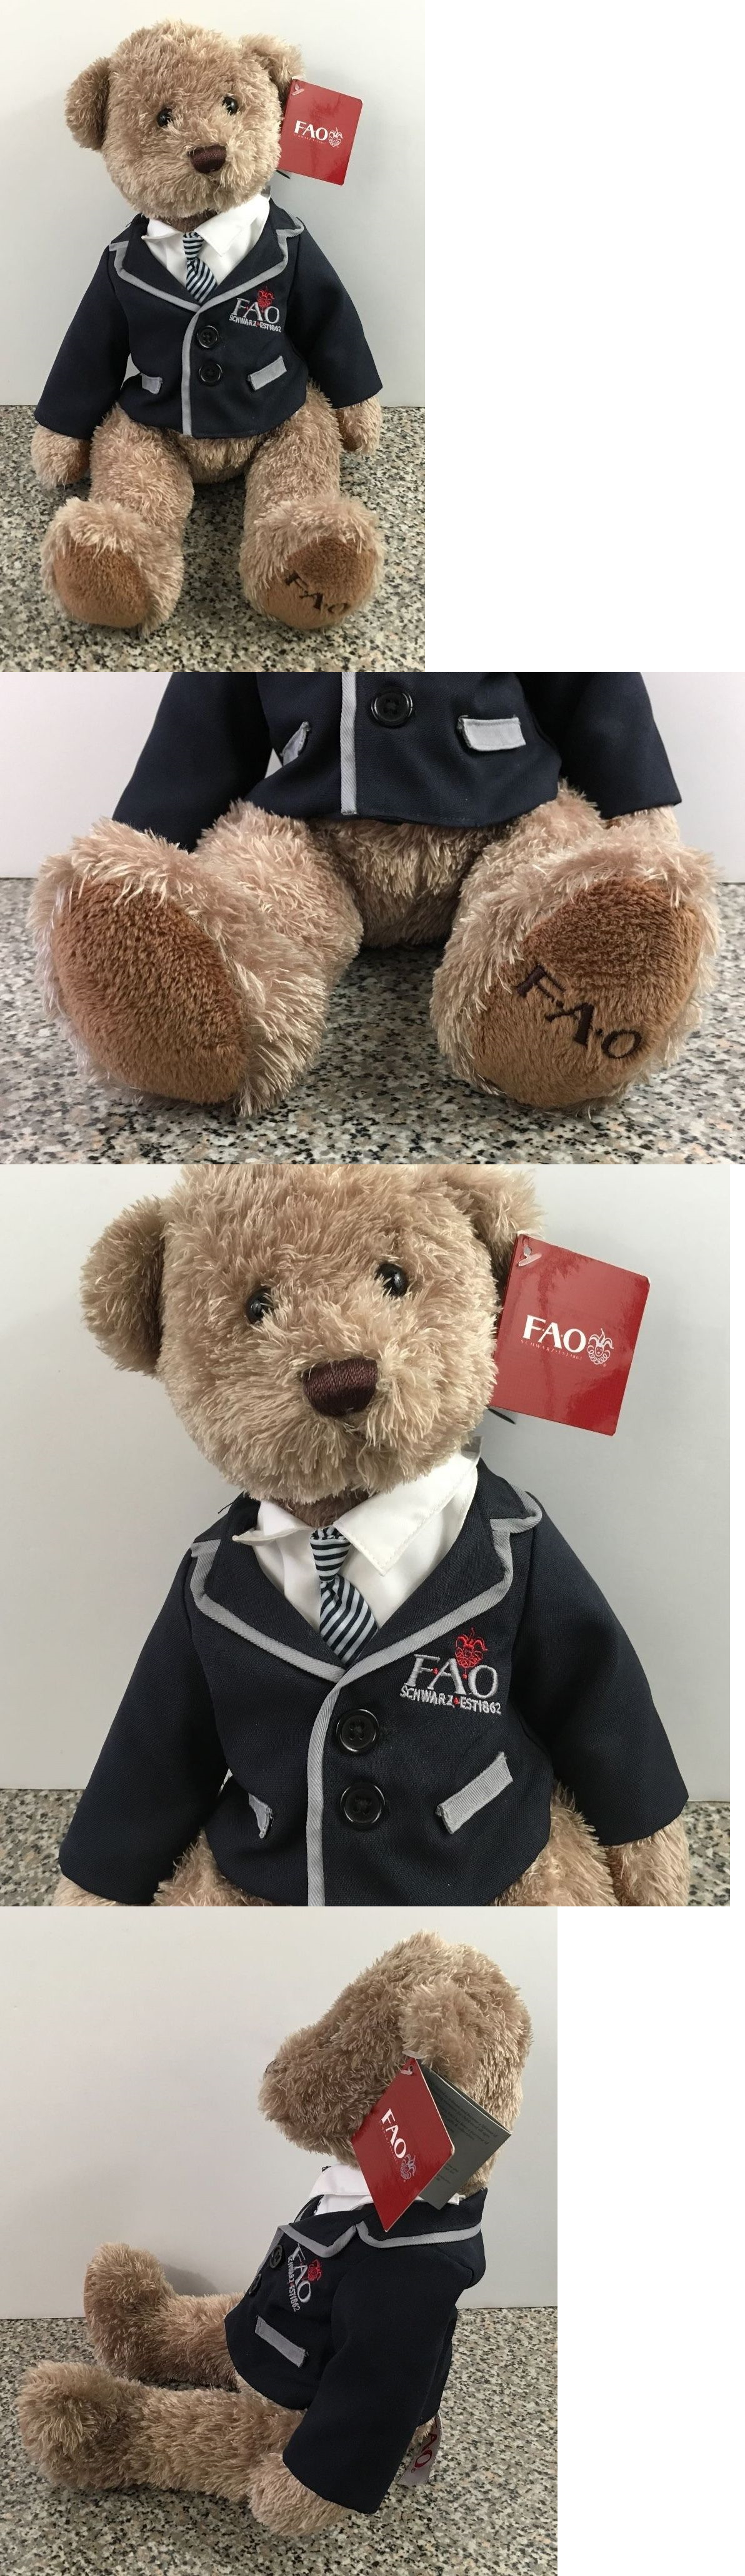 Teddy bear toys images  FAO Schwarz  Fao Schwarz Suit Tie Blazer Coat Teddy Bear Plush